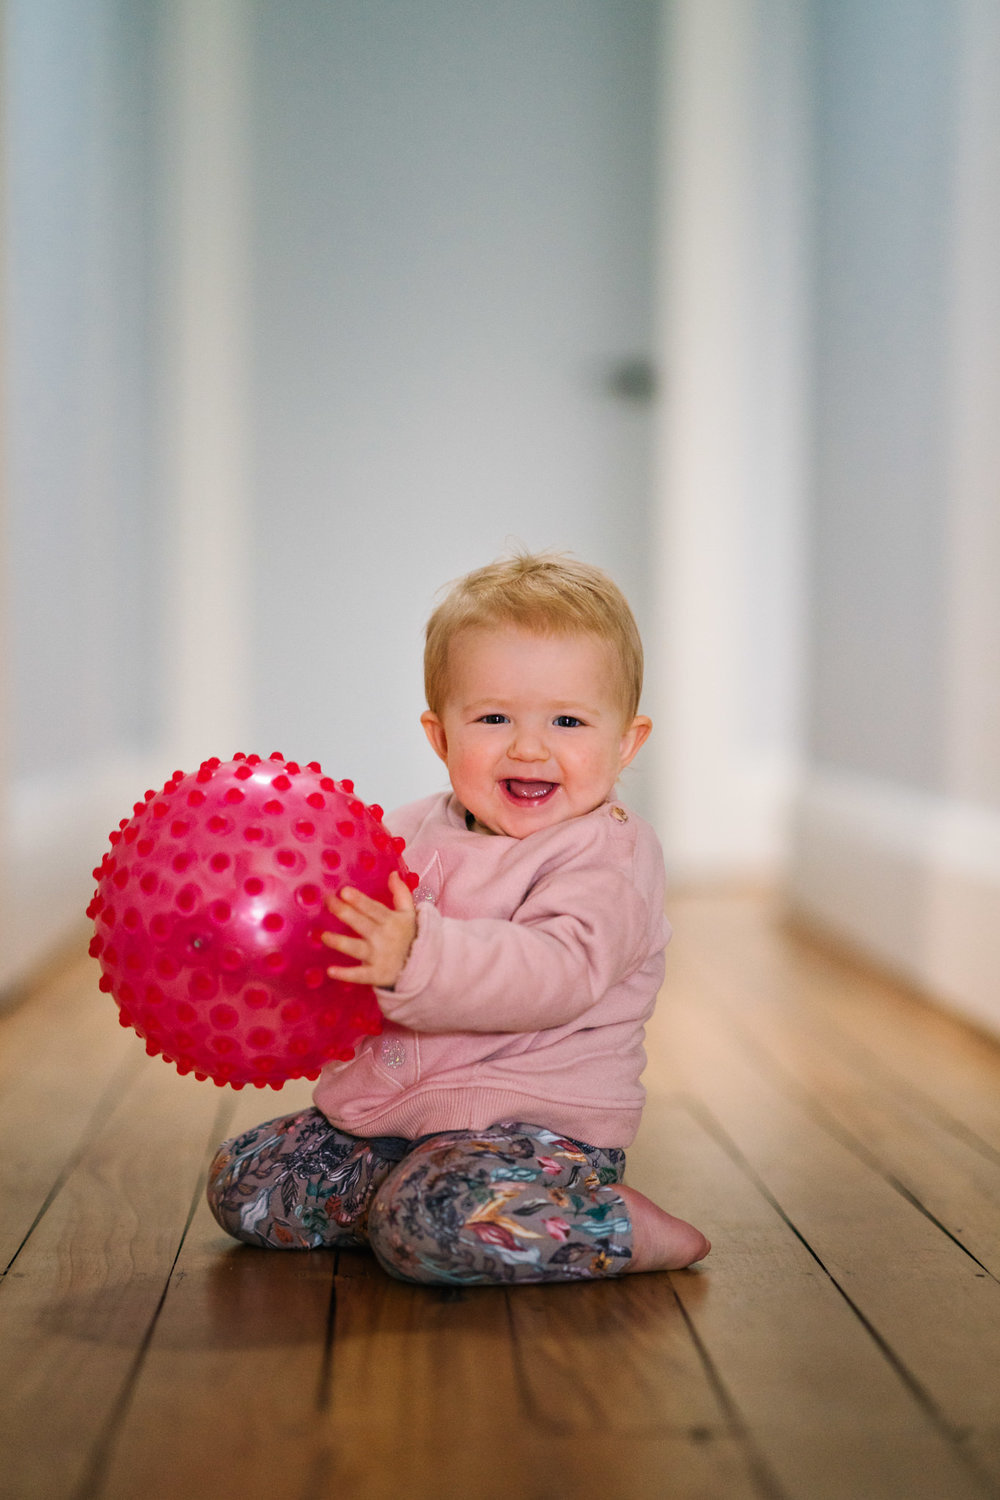 Baby playing with pink ball in period home in Coogee, NSW